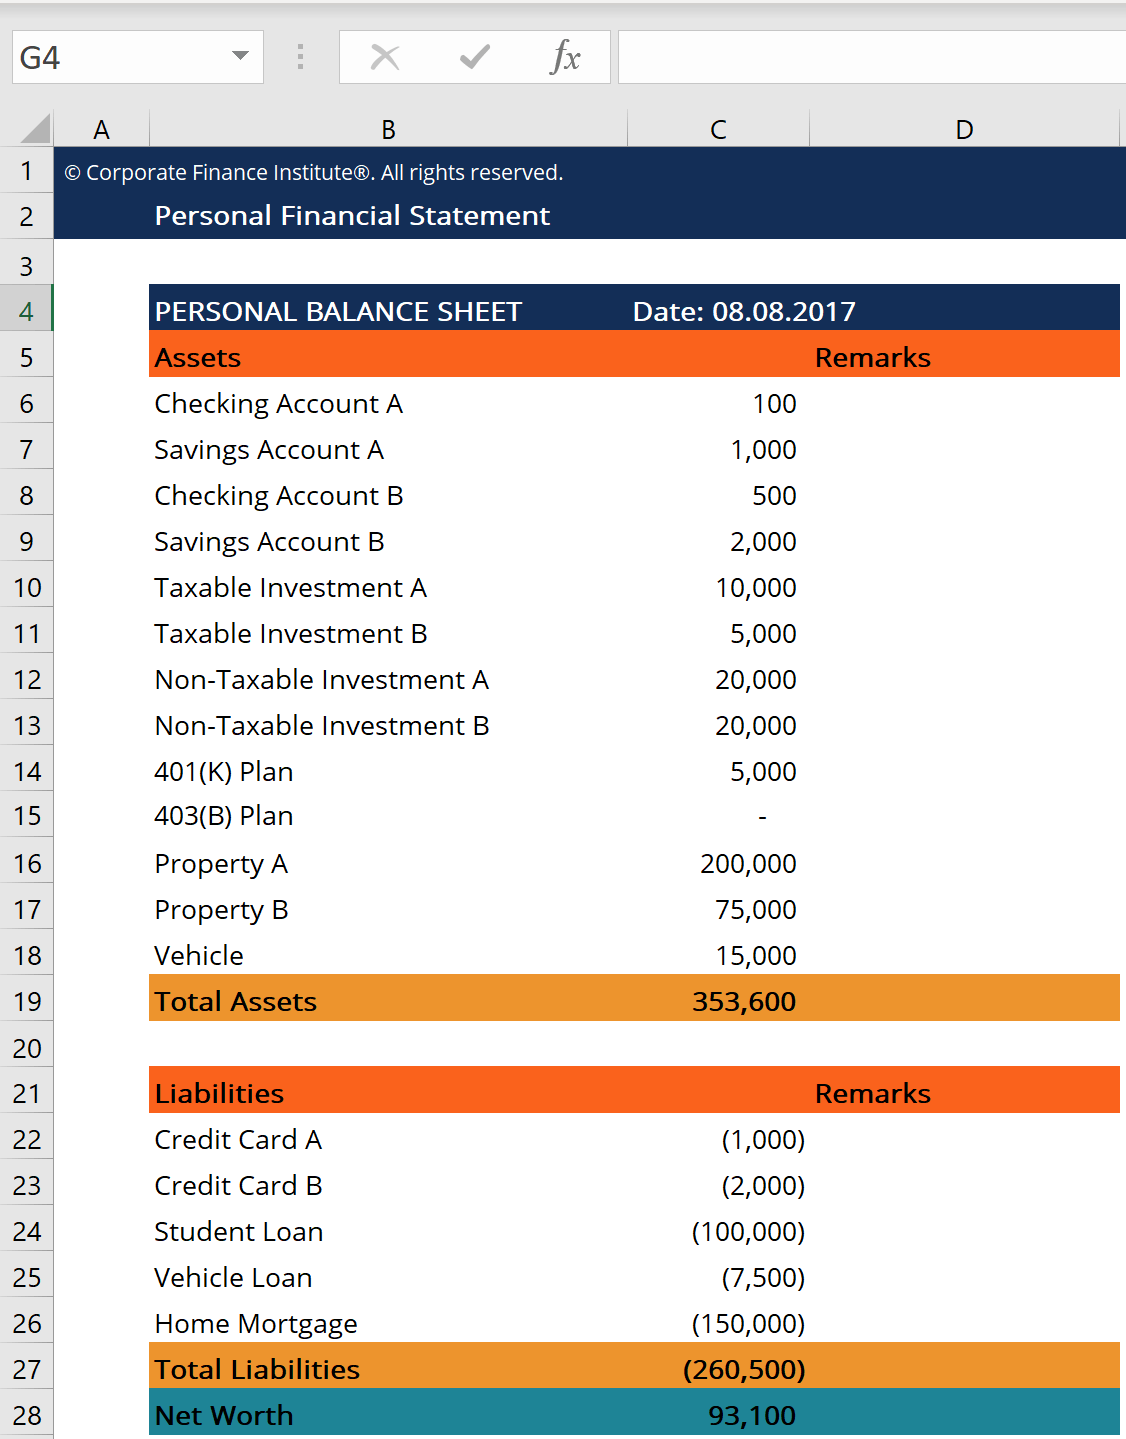 Personal Financial Statement Template Excel Free from corporatefinanceinstitute.com